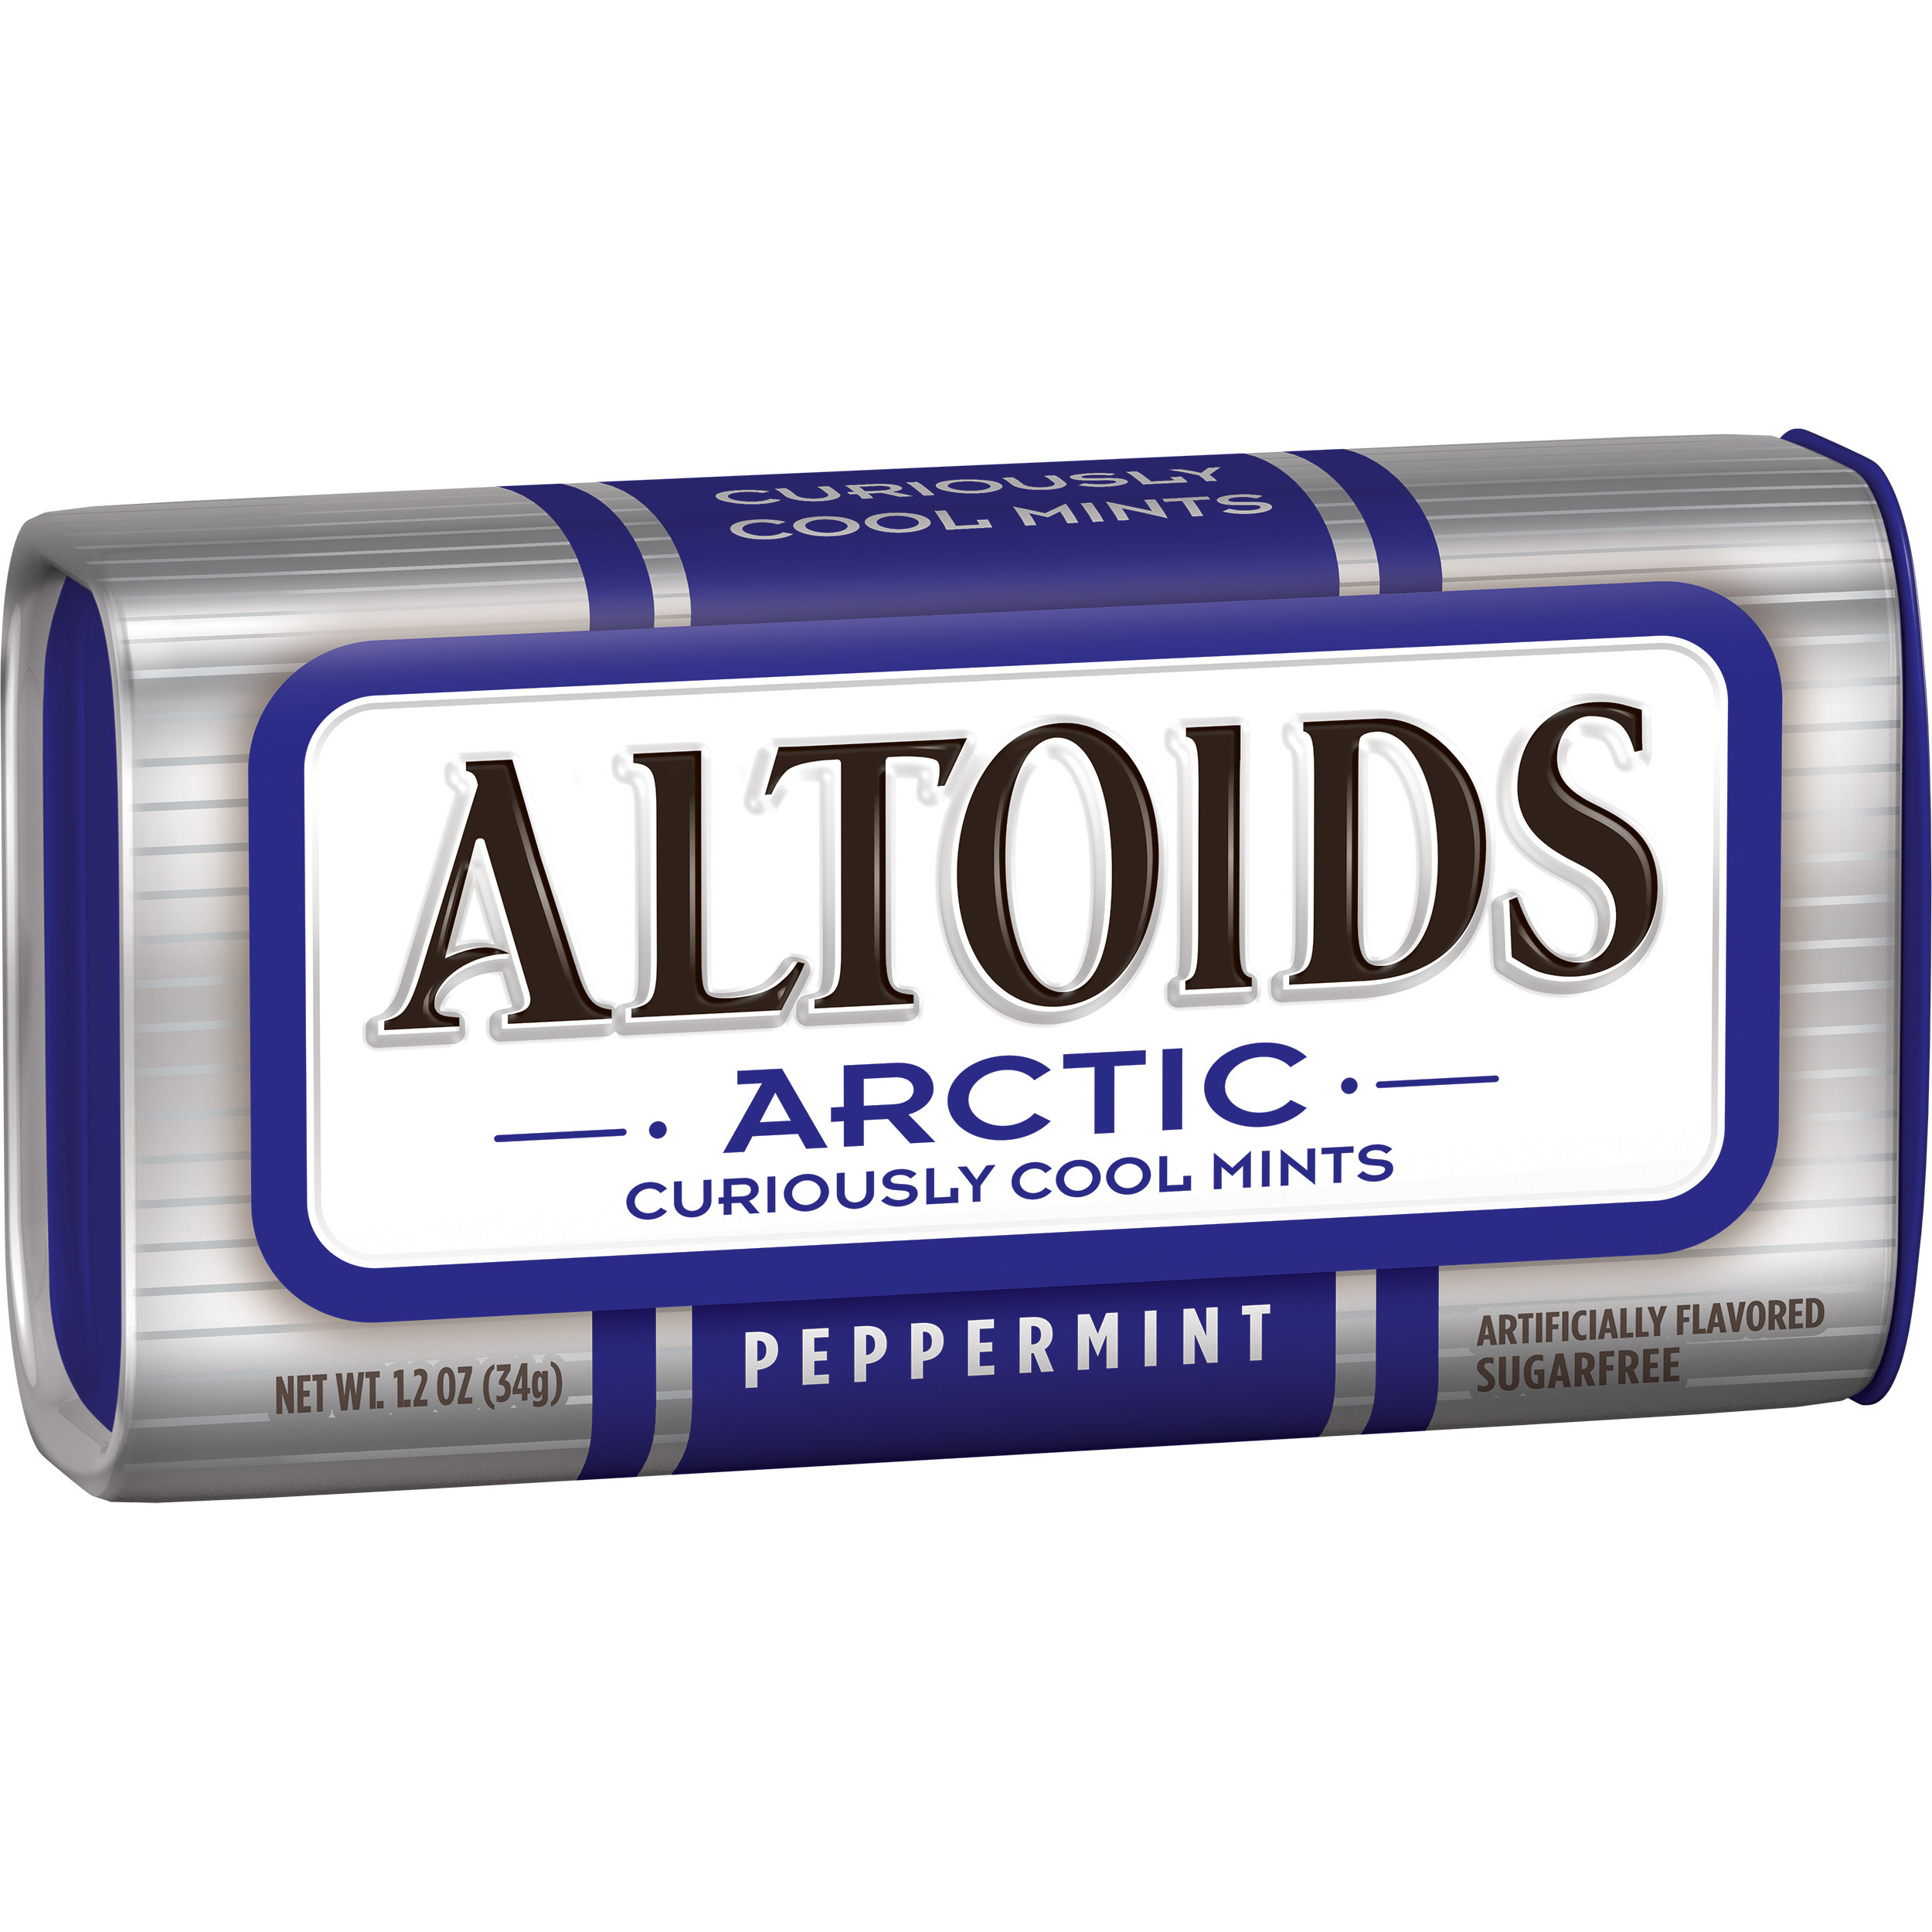 Altoids Arctic Peppermint Sugarfree Mints Single Pack, 1.2 ounce by Wm. Wrigley Jr. Company